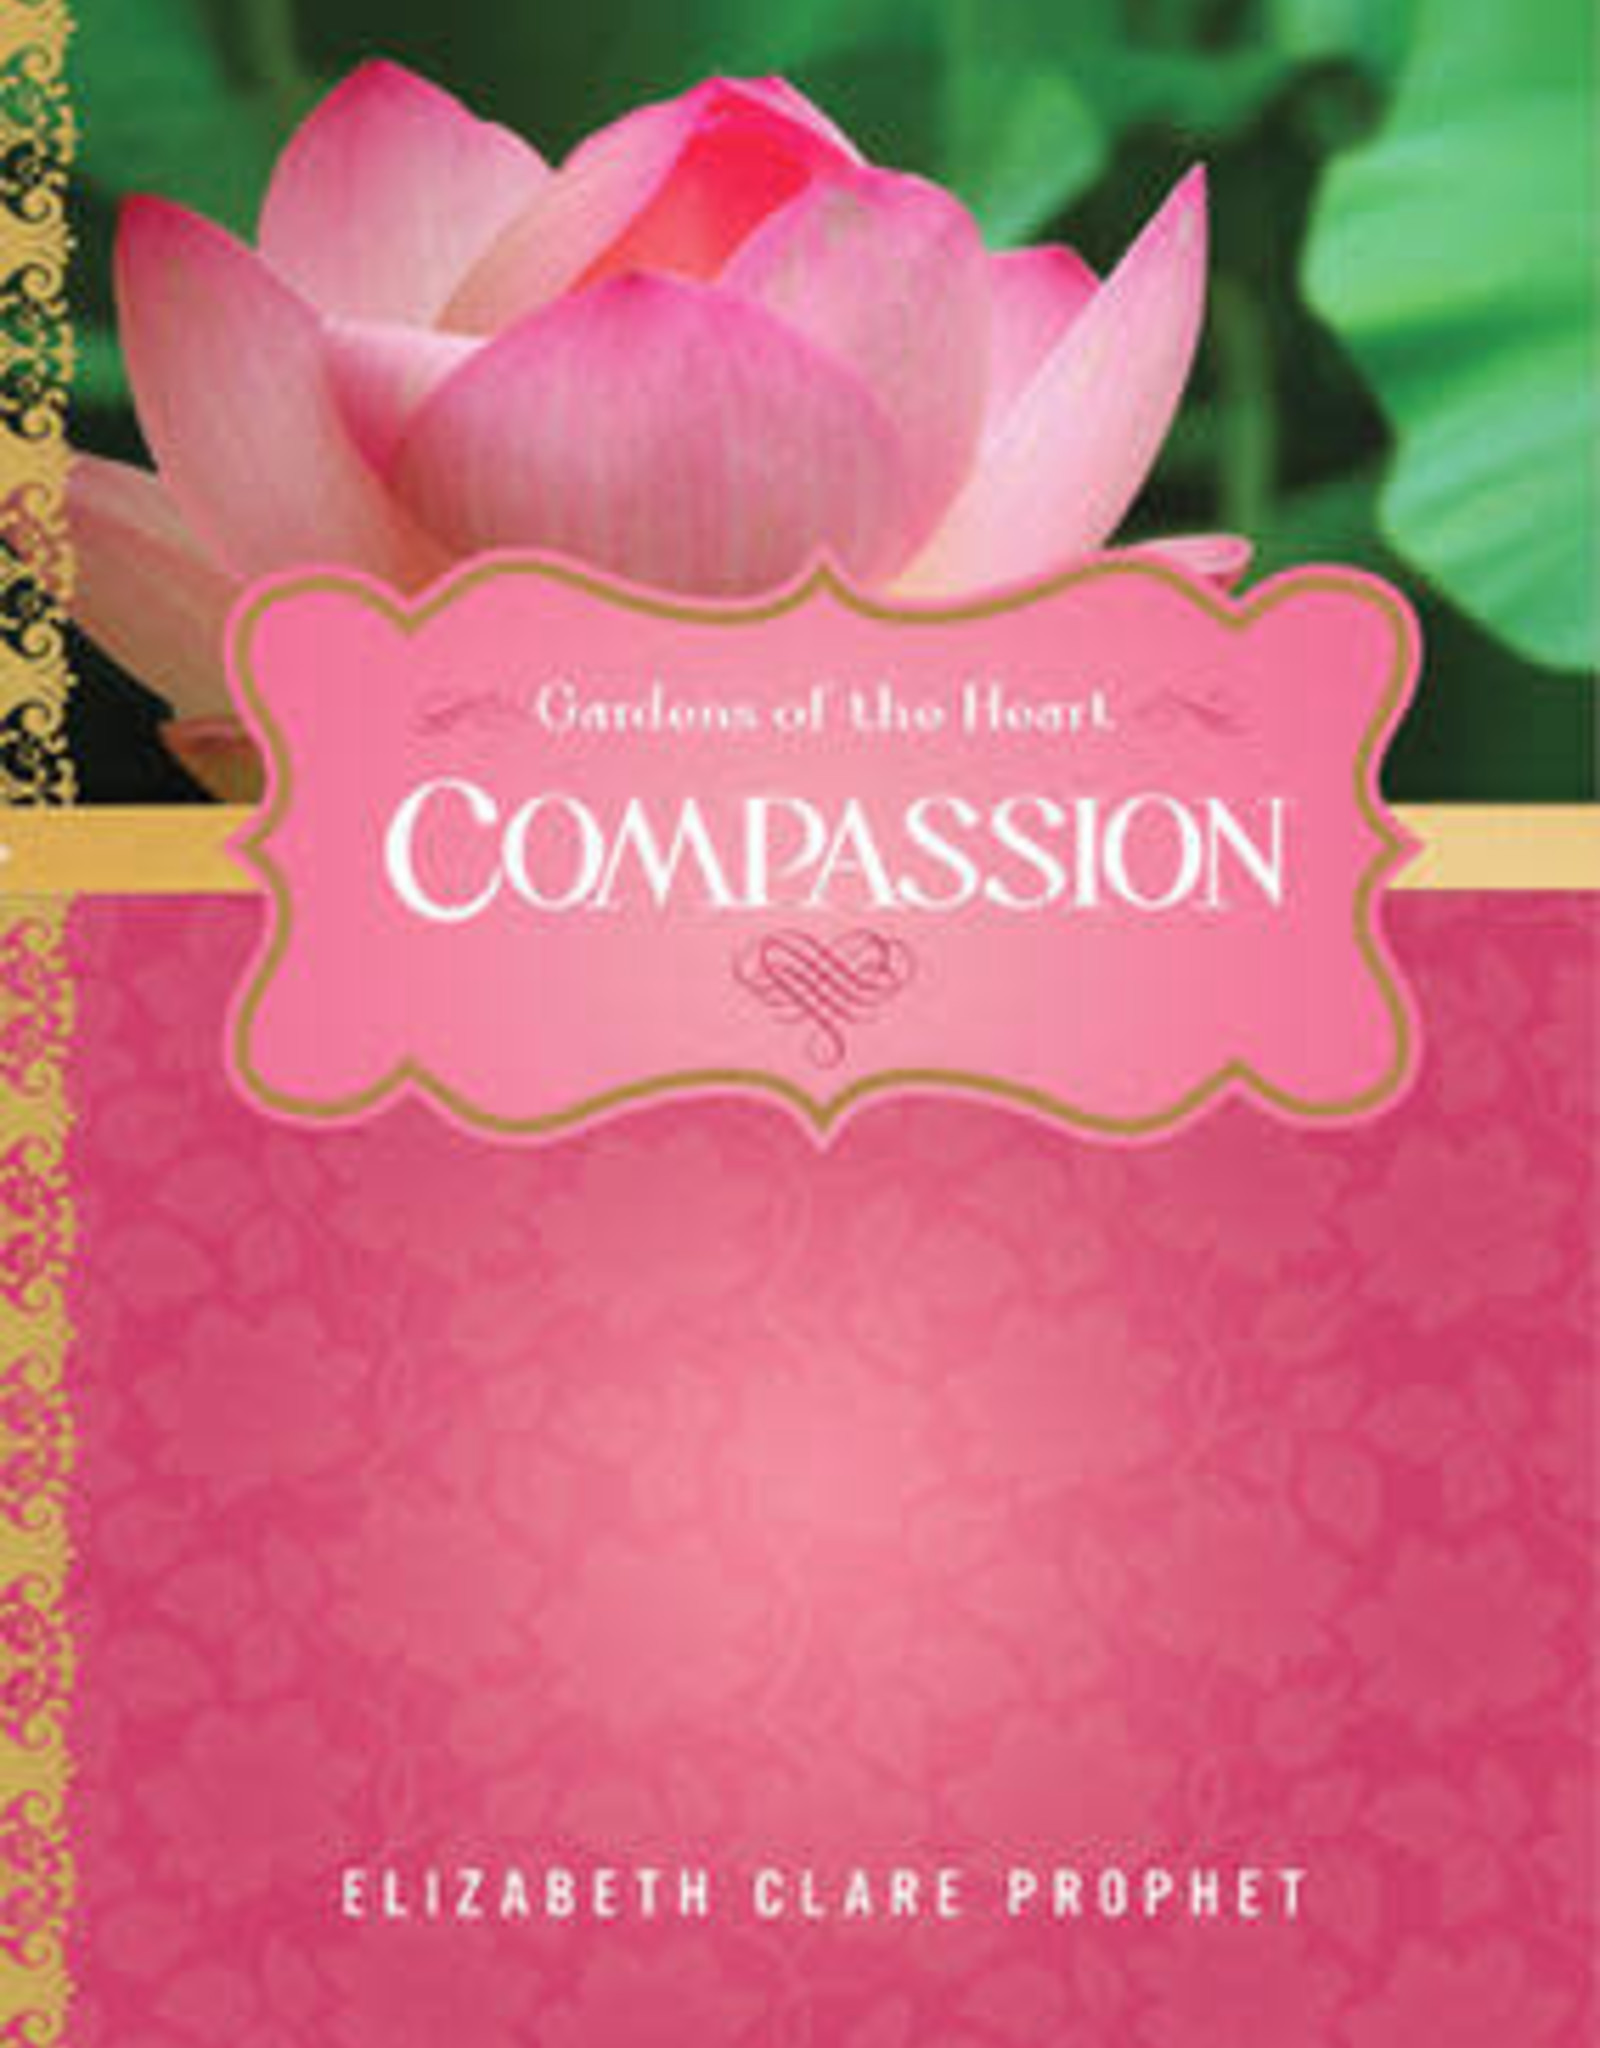 Compassion: Gardens of the Heart